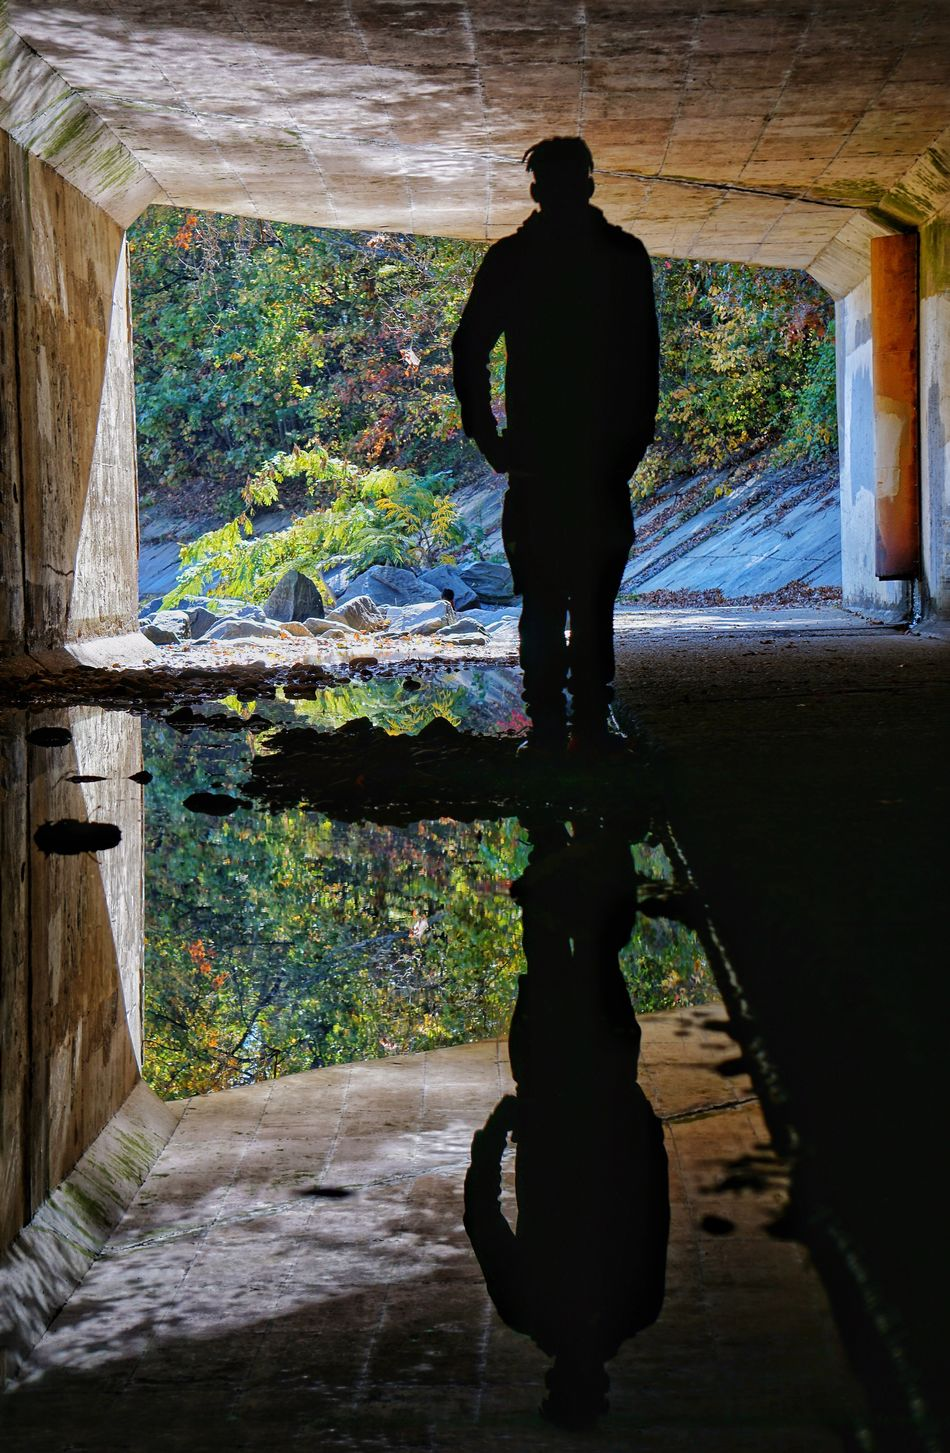 Full Length Real People Standing Water One Person Lifestyles Men Nature Beauty In Nature Outdoors Tunnel Tunnel View Infrastructure Urban Environment Silhouette Silhouettes Reflection Reflections Water Reflections Water Reflection Water Surface Cool Guy Water Urban Urban Geometry